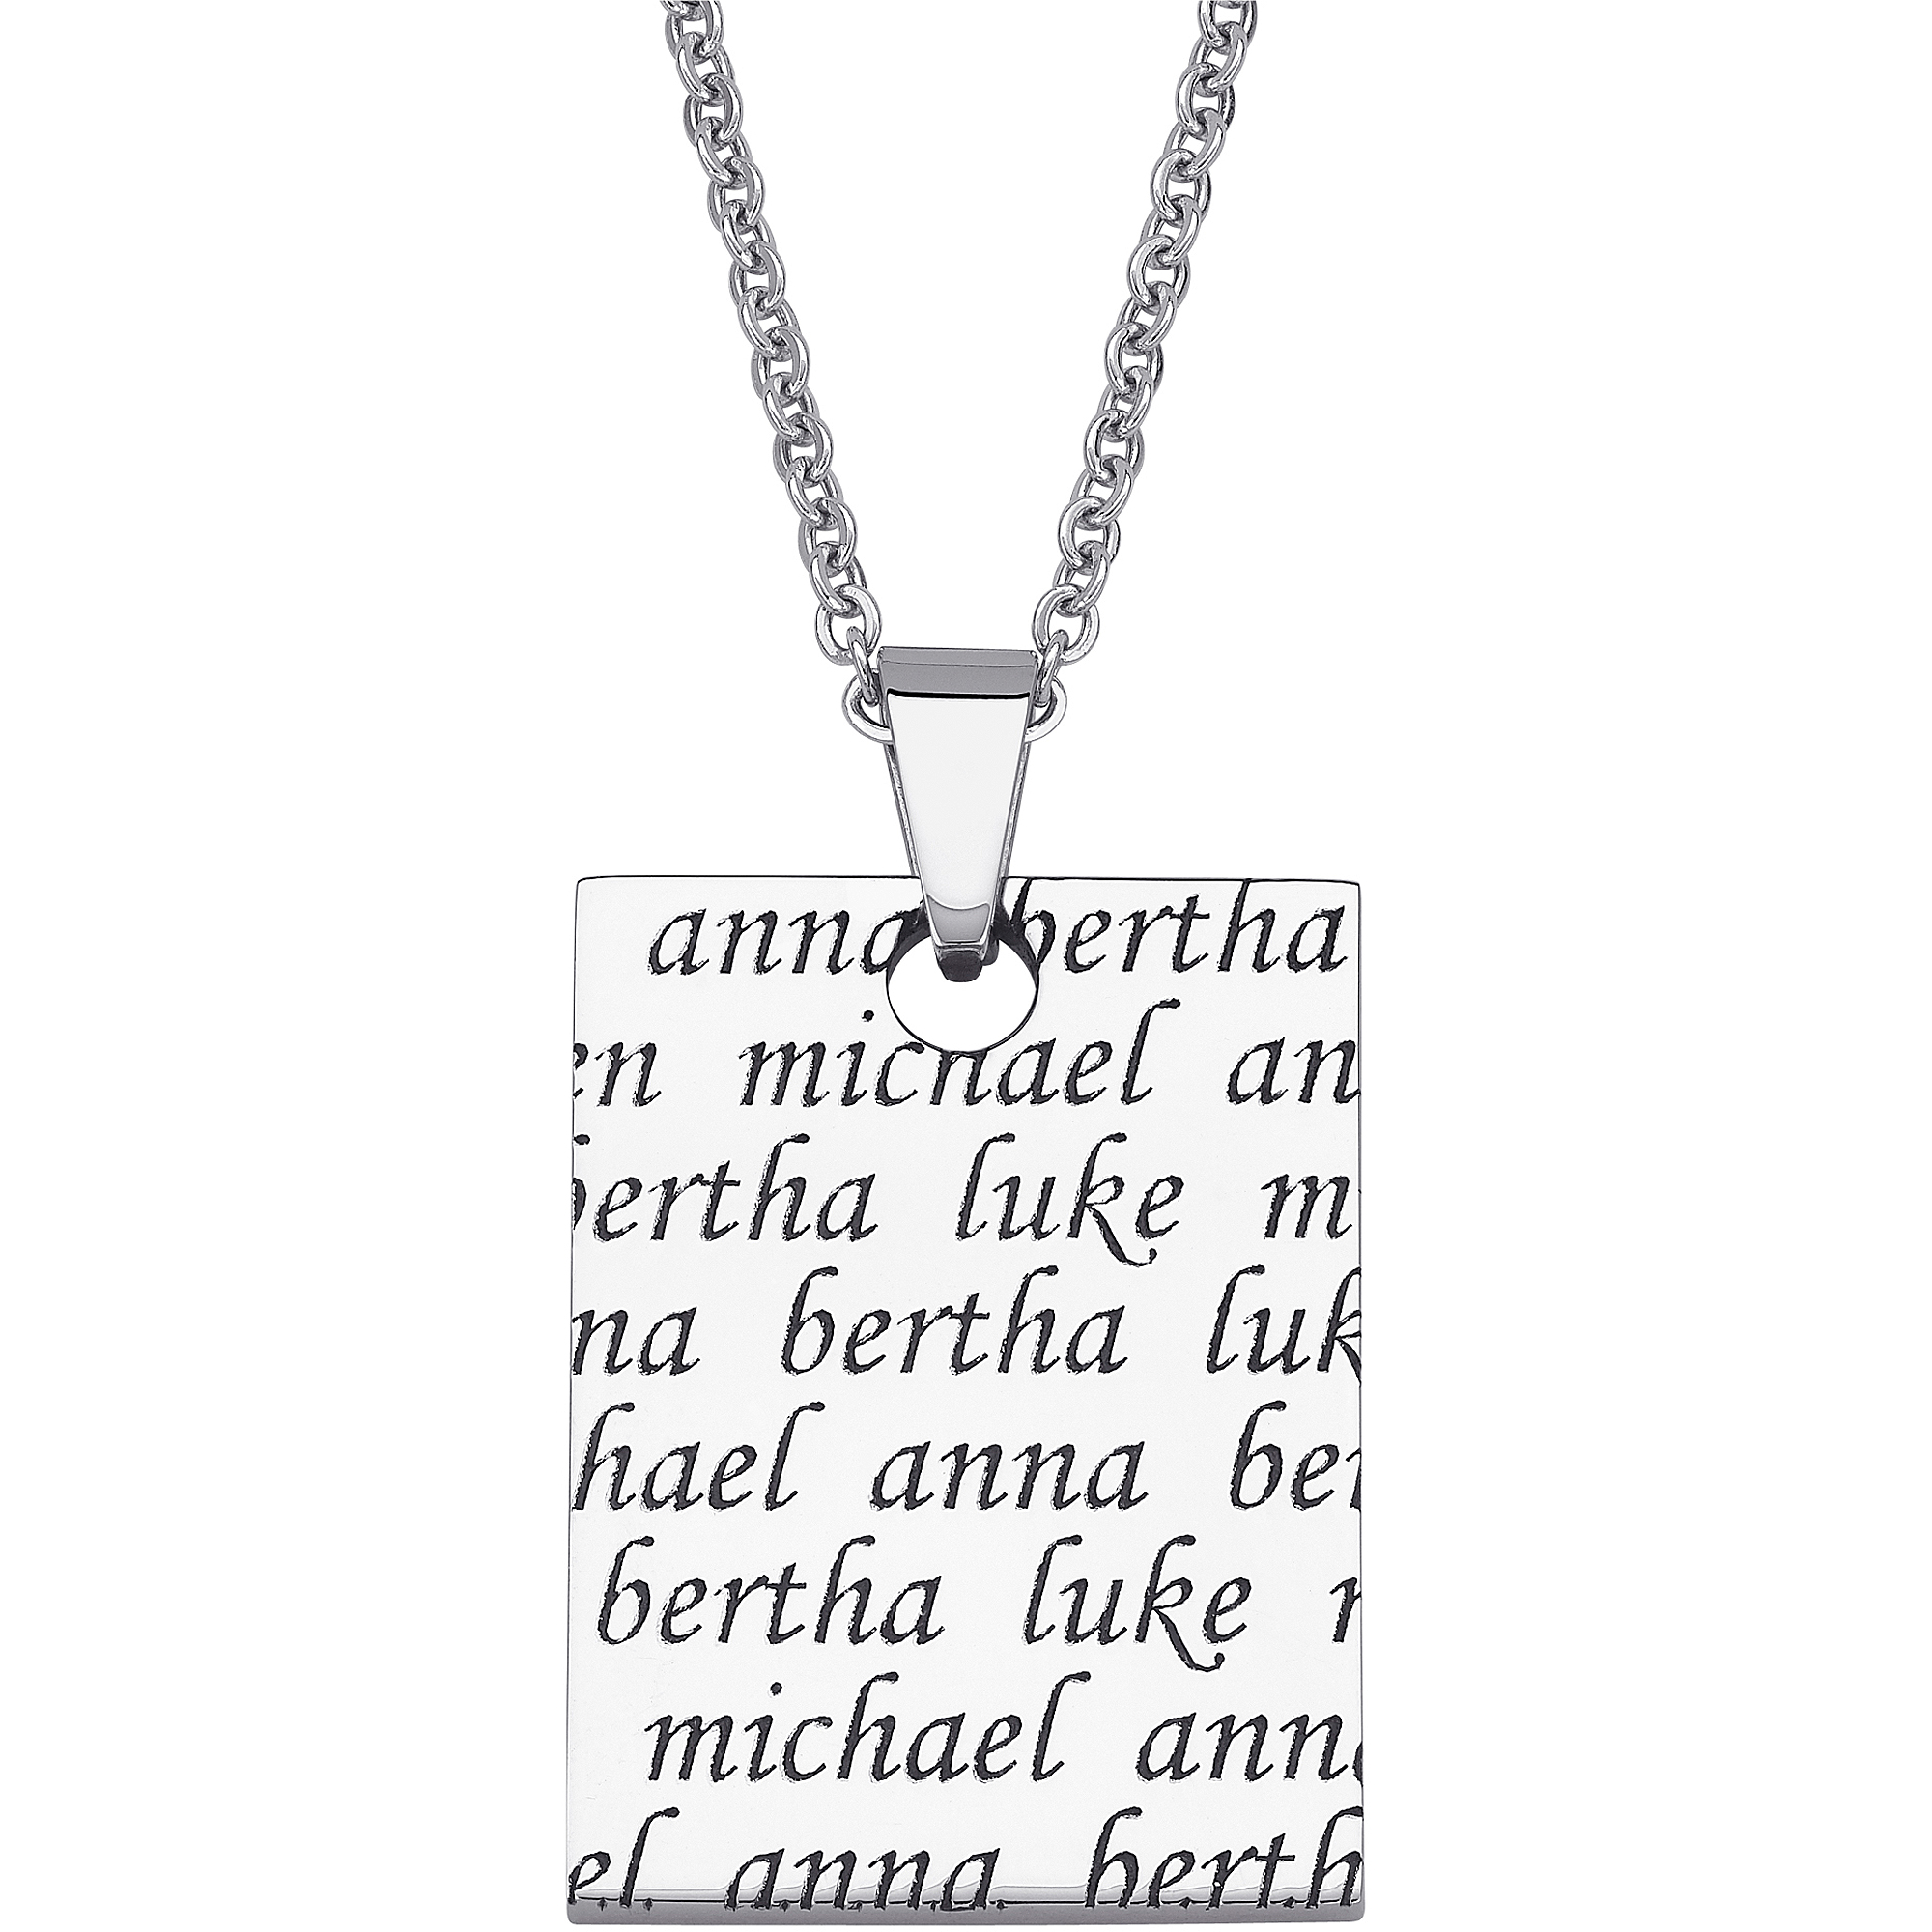 Personalized Women's Stainless Steel Never-ending Engraved Names Pendant